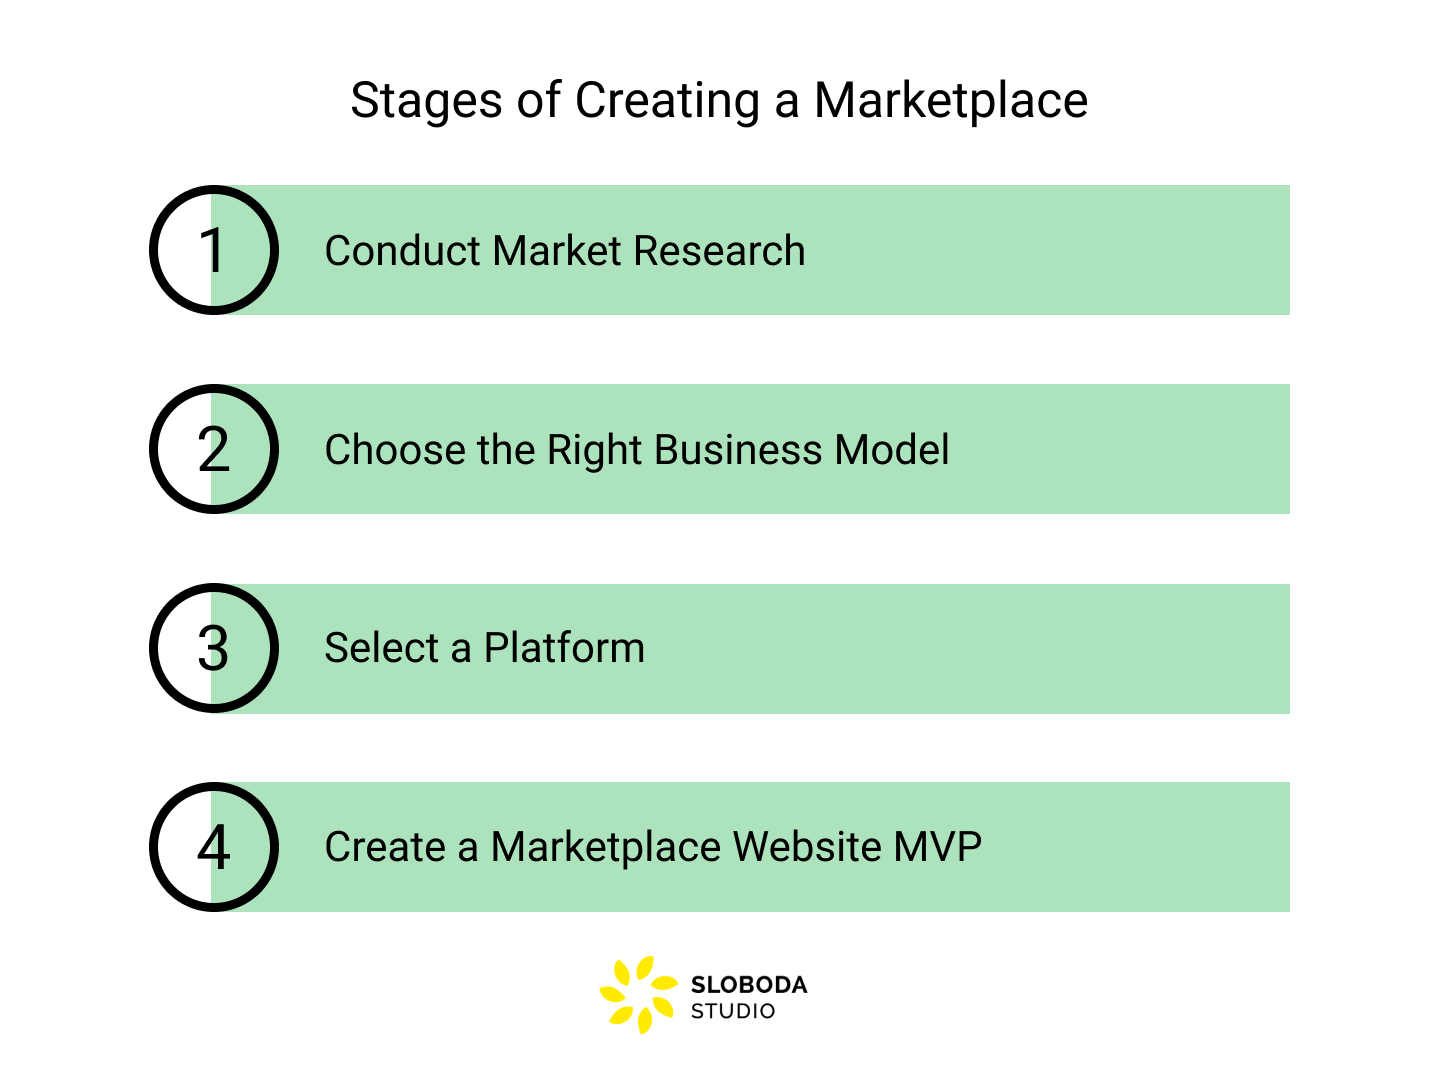 Stages of creating a marketplace